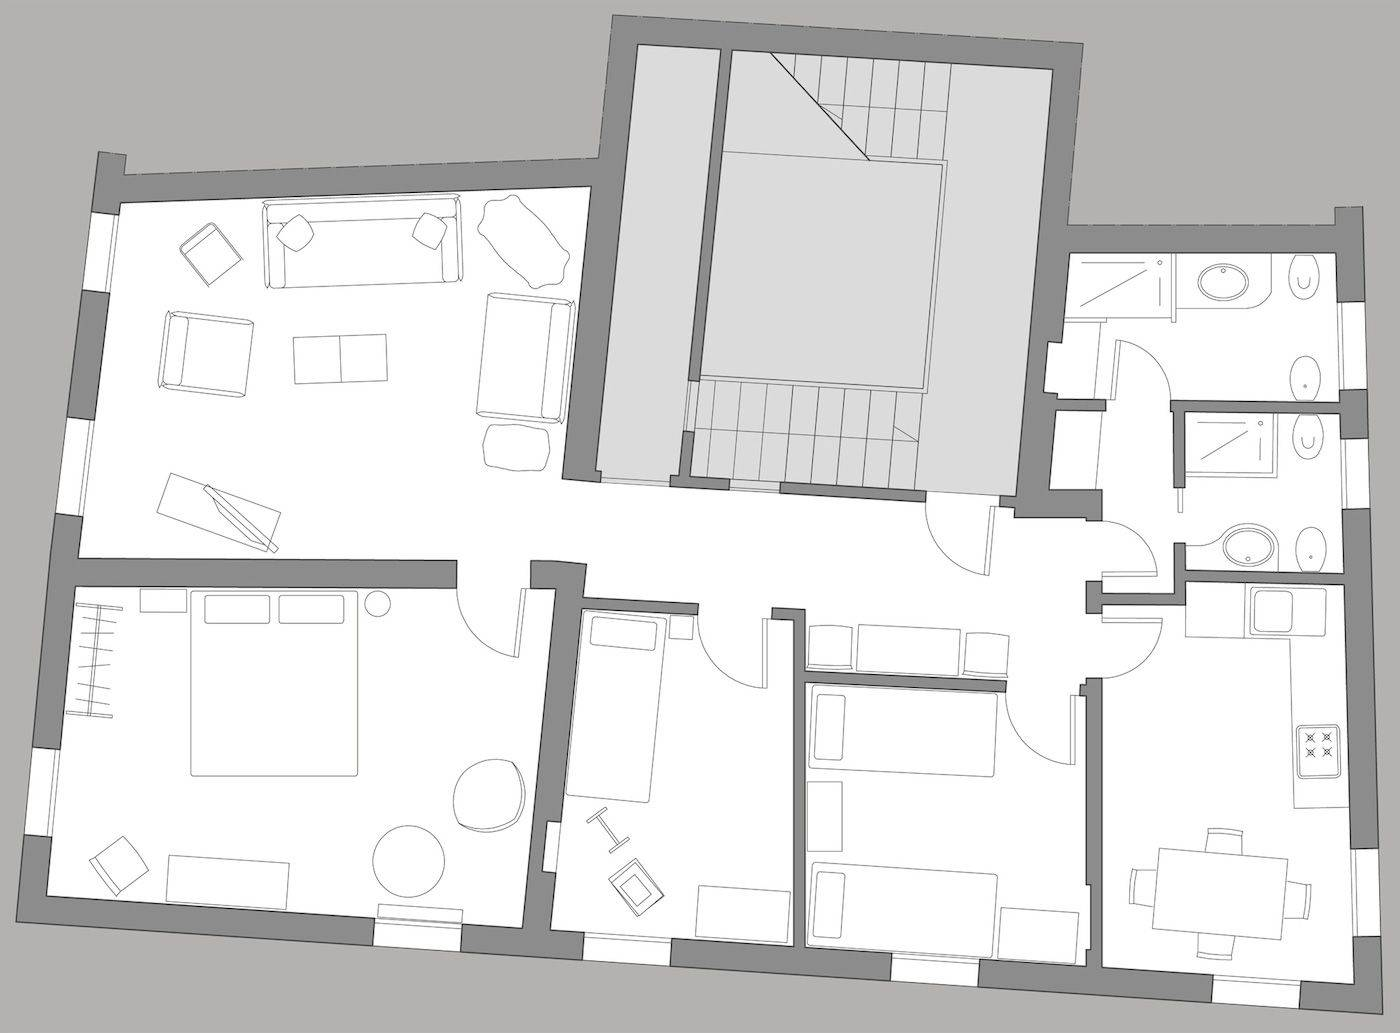 San Bortolo floor plan